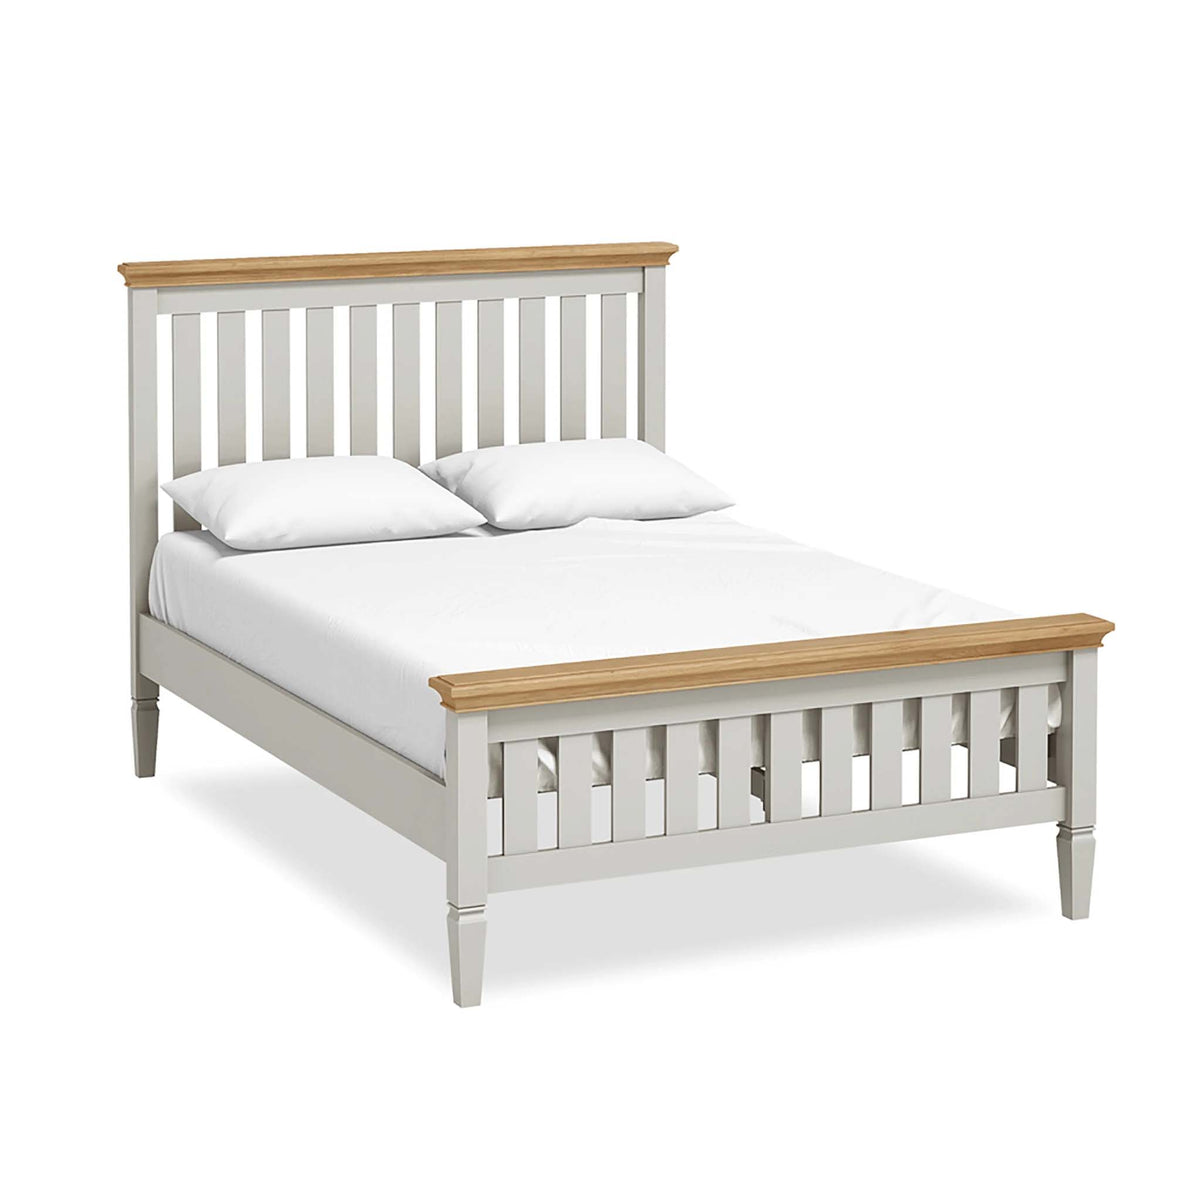 "Normandy Grey 4'6"" Bed by Roseland Furniture"